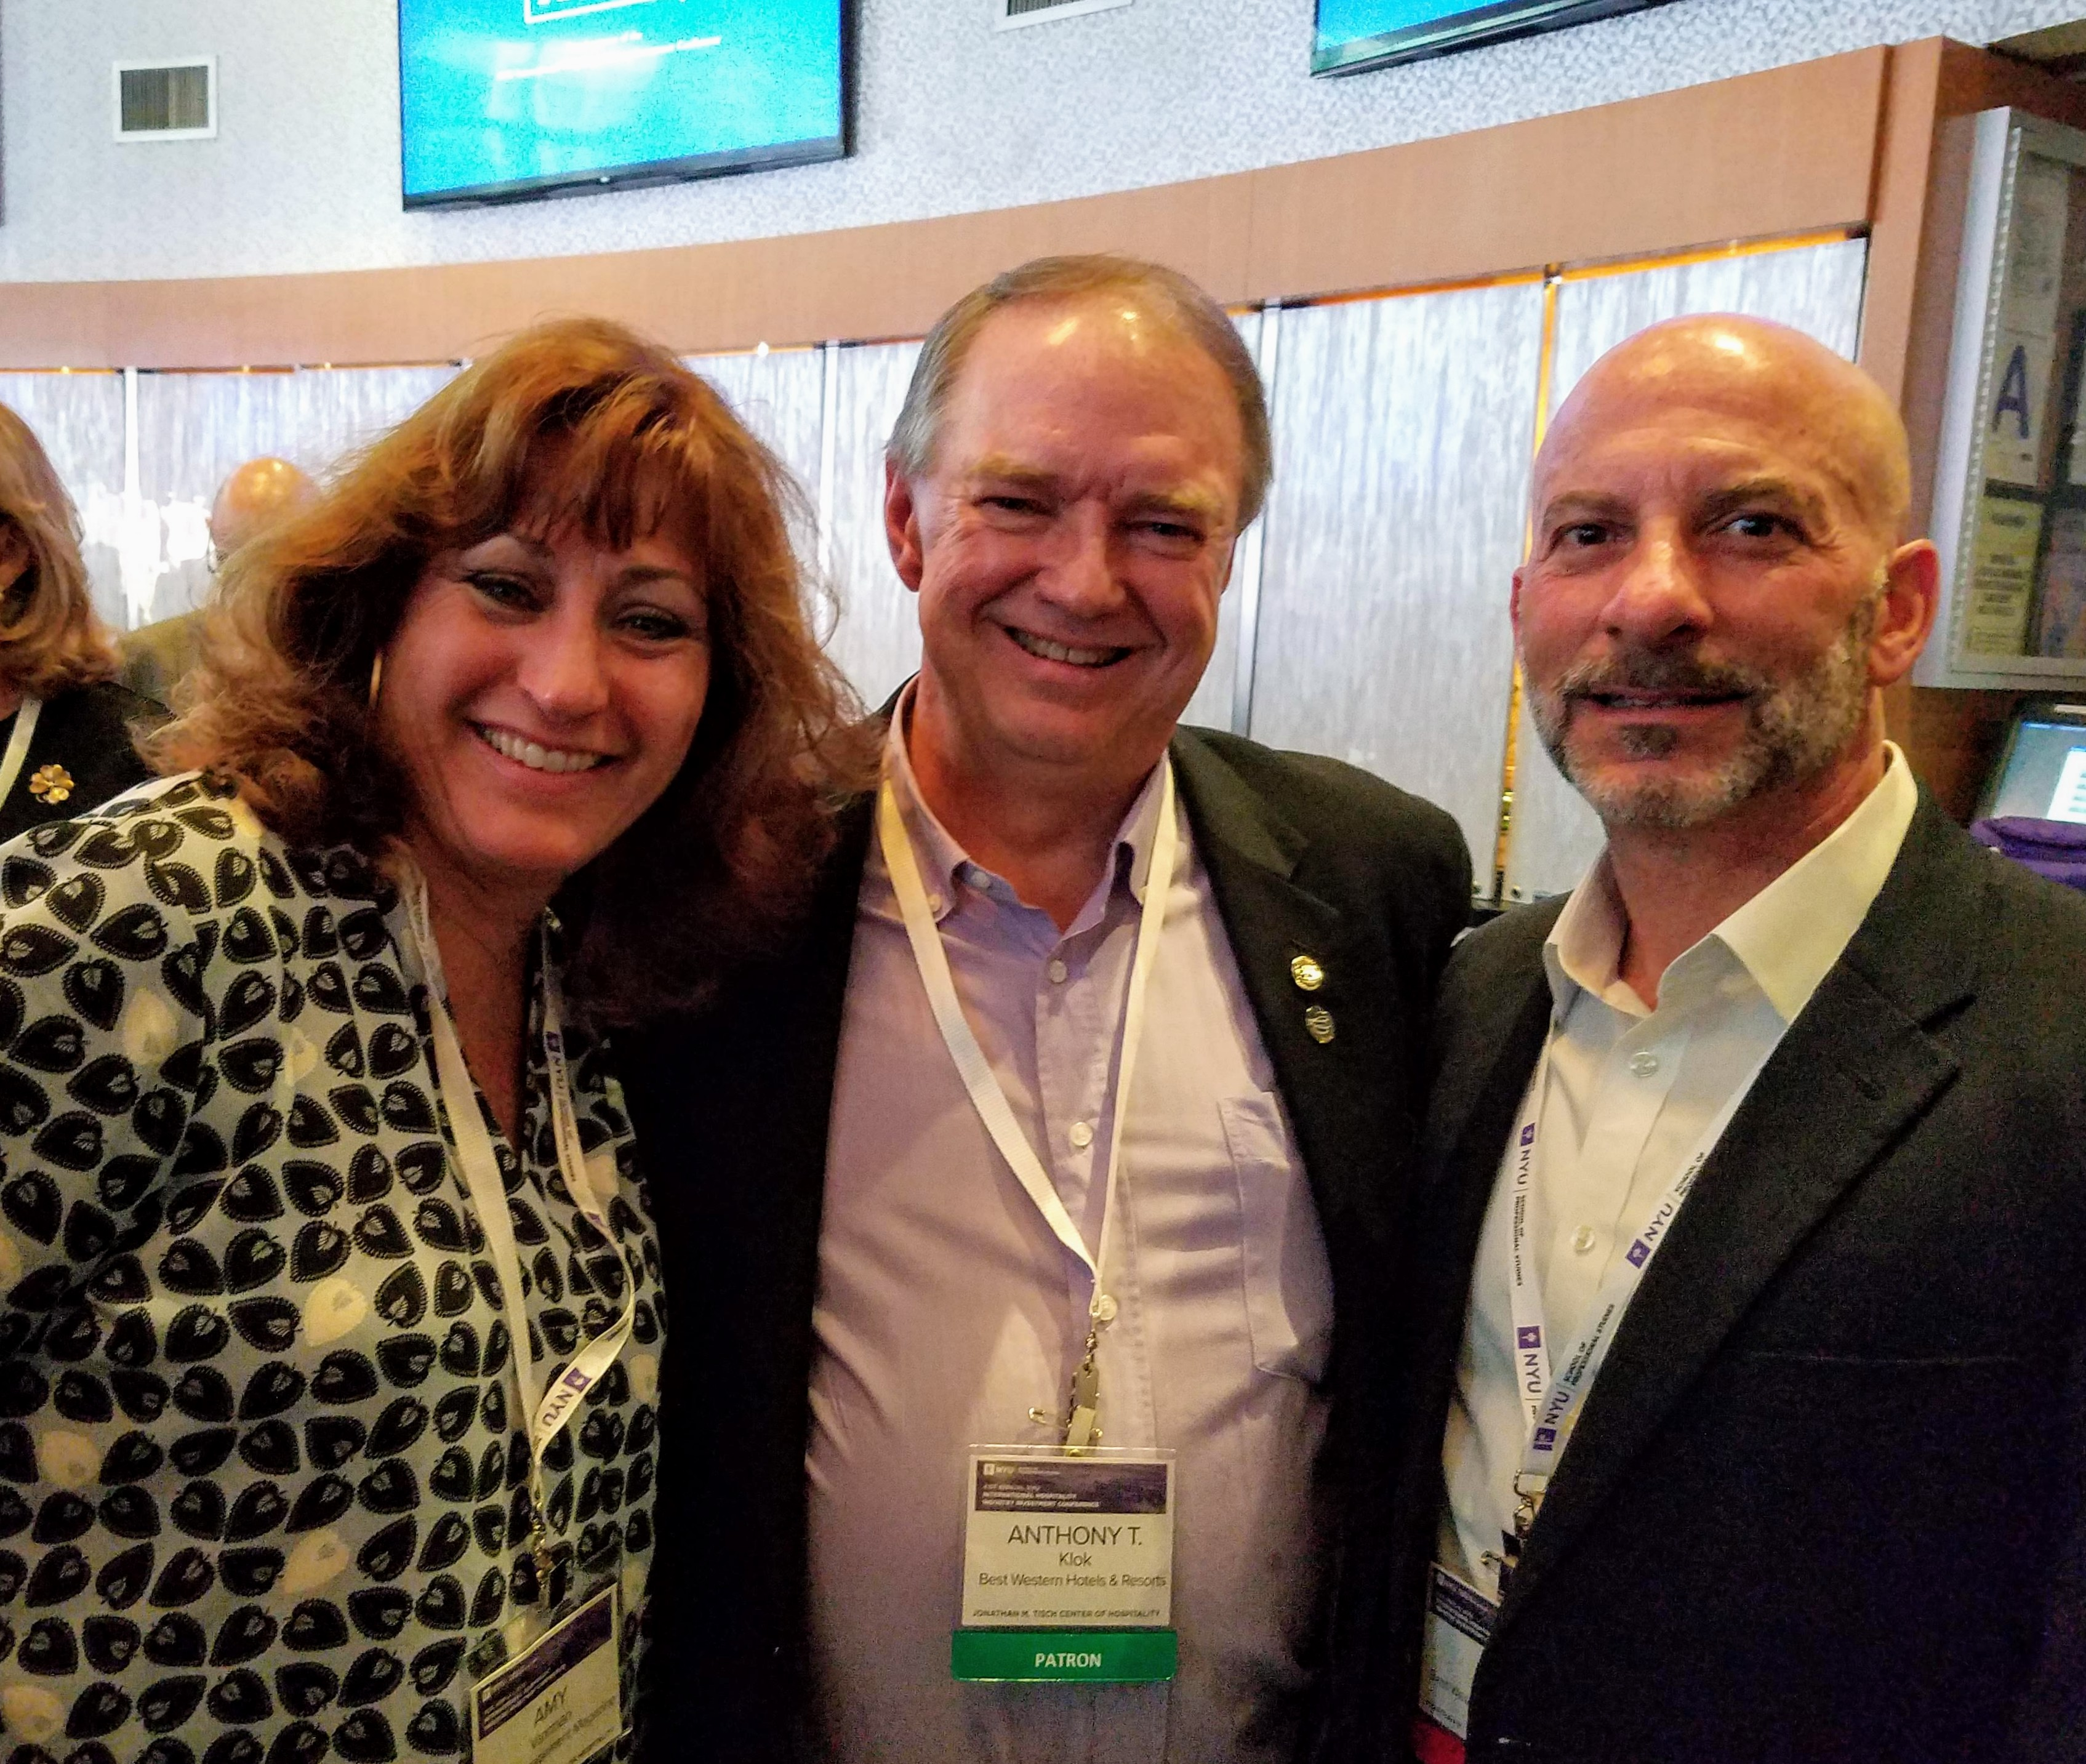 From left: Amy Vaxman, group publisher of Hotel Management; Anthony Klok, board chairman for Best Western, and Ron Pohl, SVP/COO for Best Western Hotels & Resorts